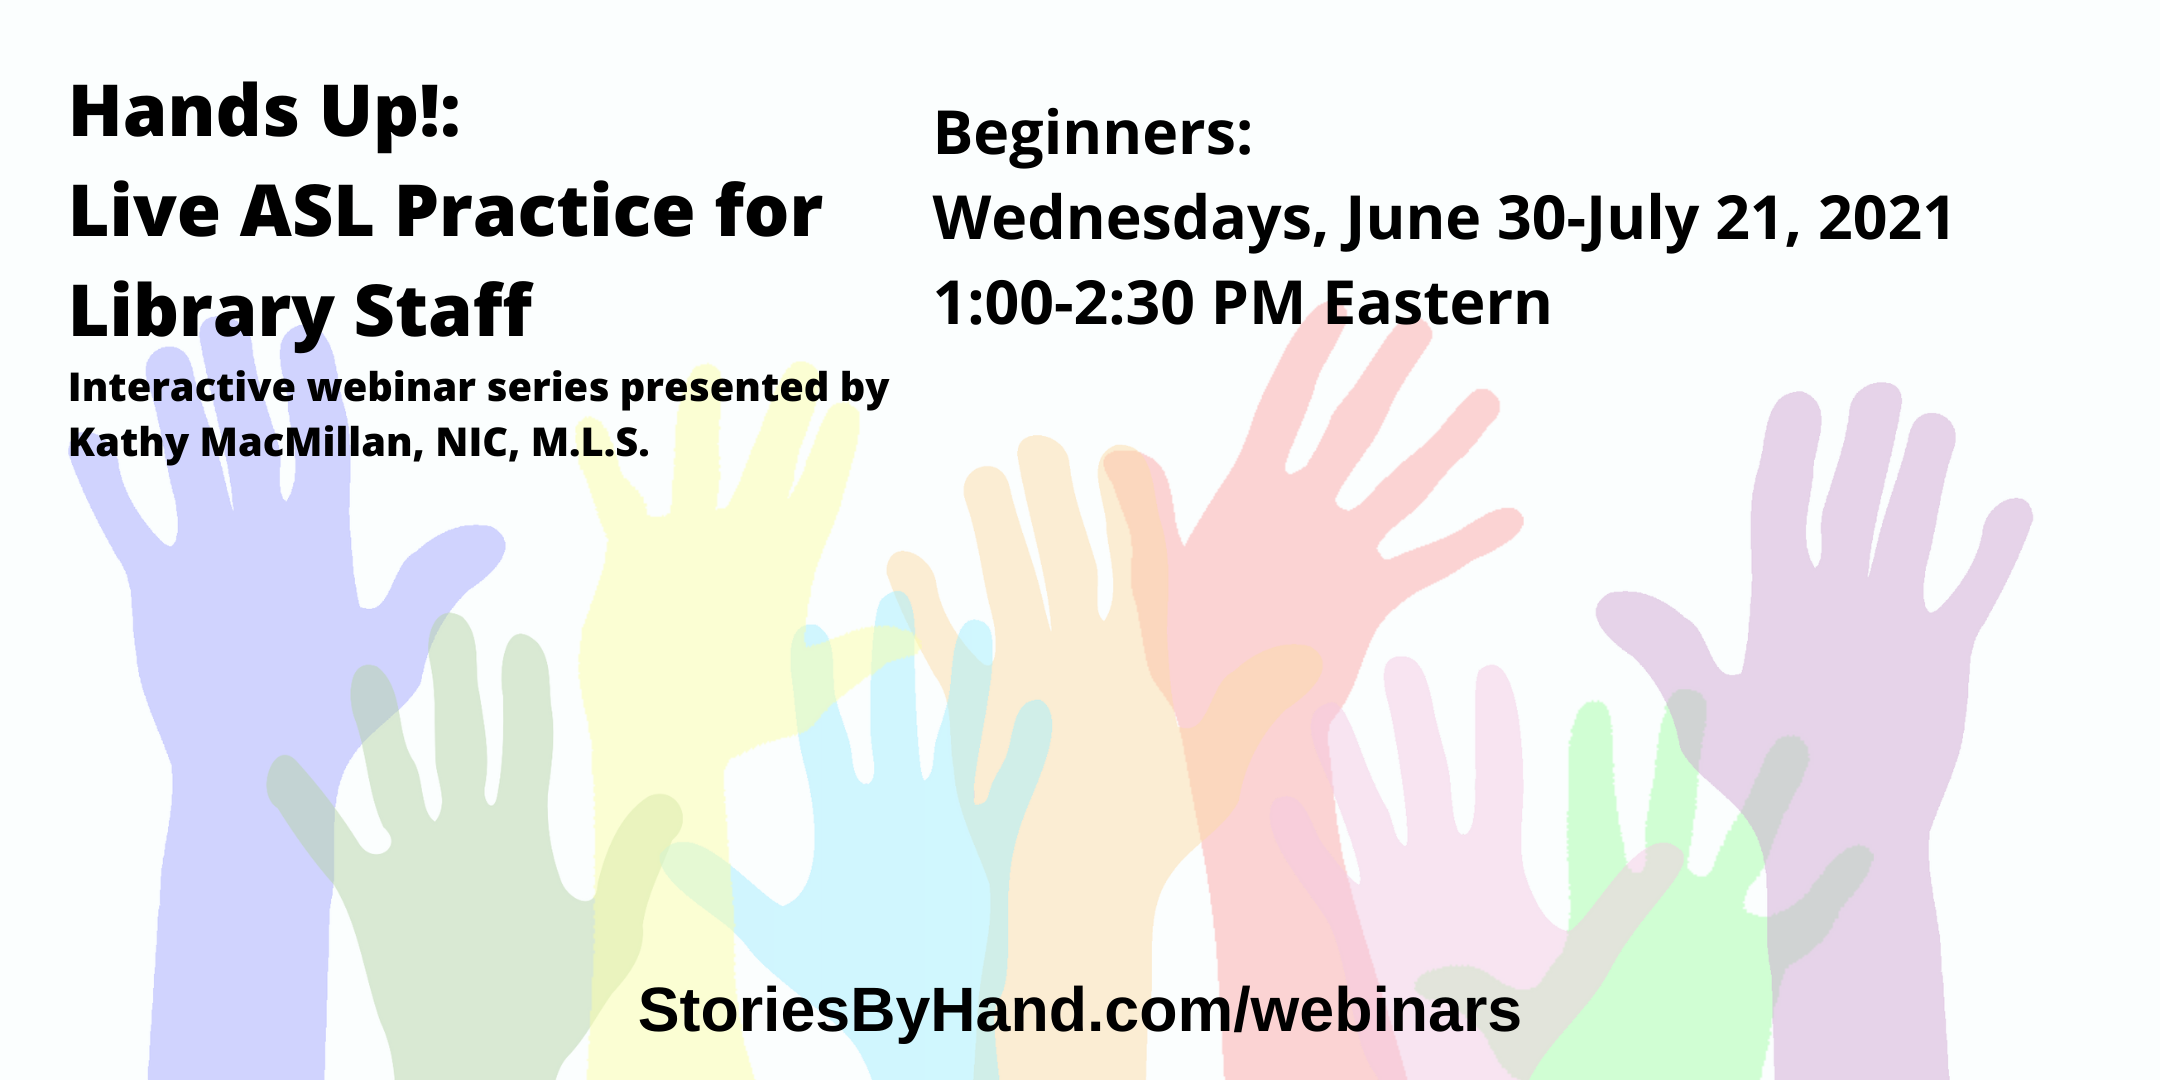 Hands Up!: Live ASL Practice for Library Staff | Interactive webinar series presented by  Kathy MacMillan, NIC, M.L.S. | Beginners: Wednesdays, June 30-July 21, 2021, 1:00-2:30 PM Eastern | StoriesByHand.com/webinars | Words appear over a drawing of upraised hands in bright pastel colors against a white background.